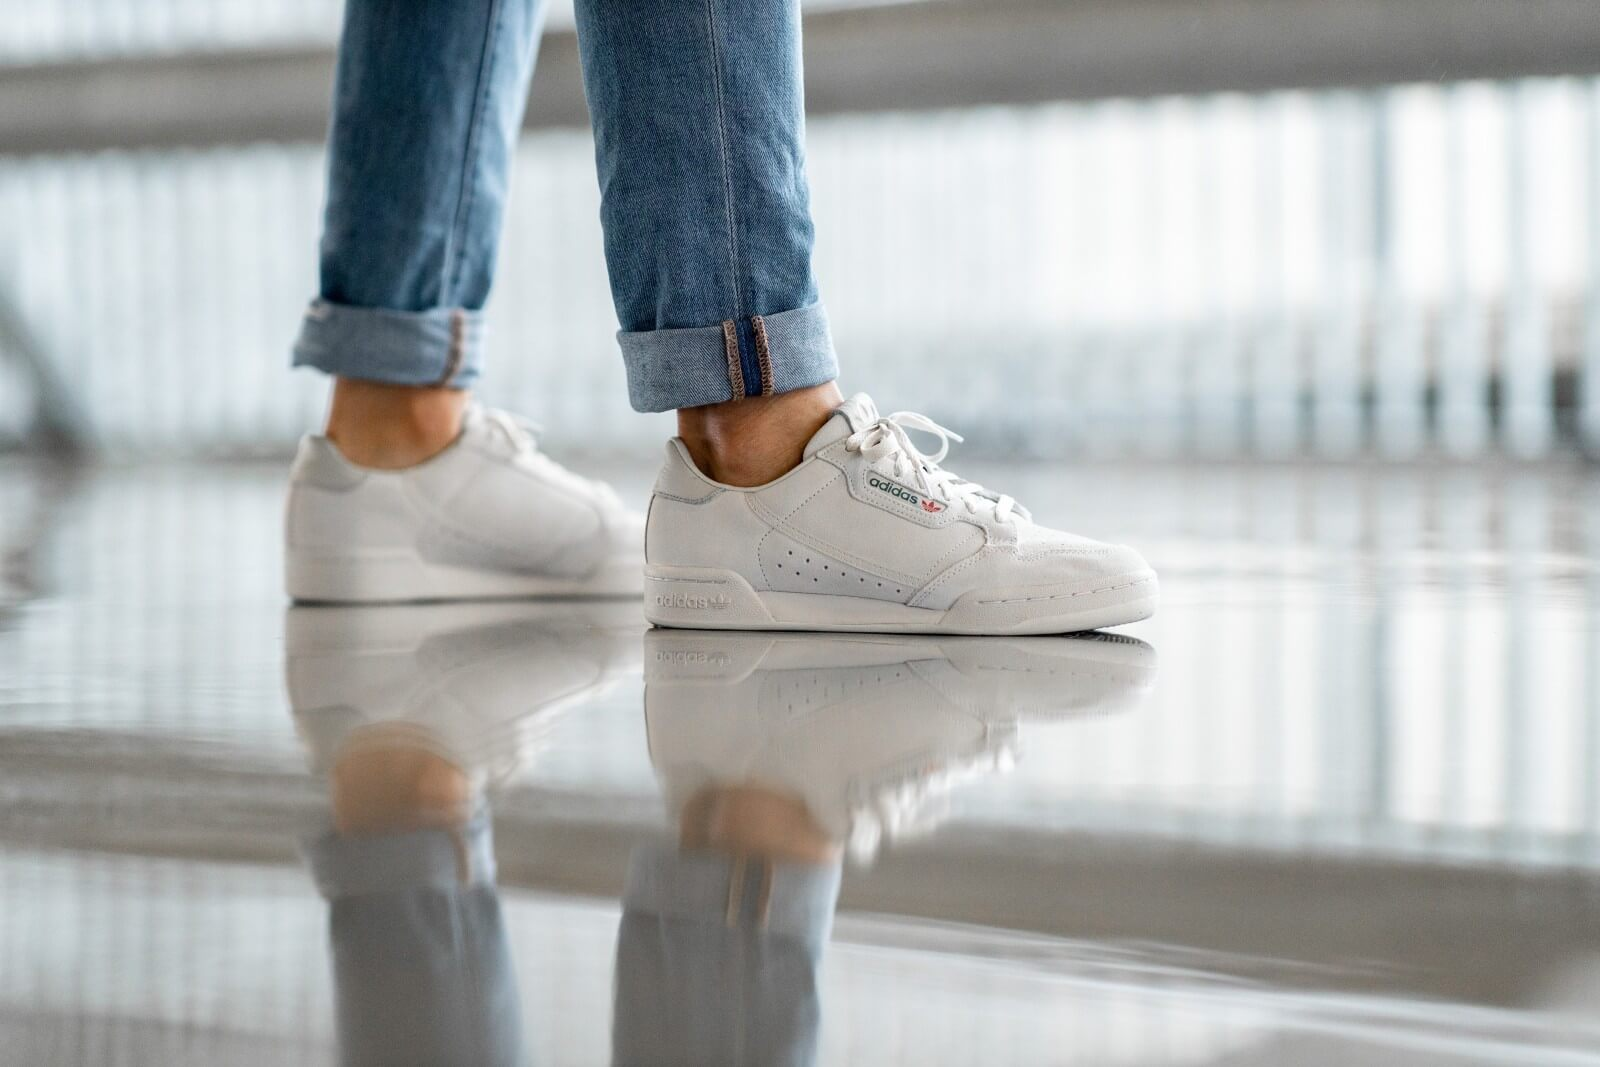 Adidas Continental 80 Raw White/Off White - EE5363